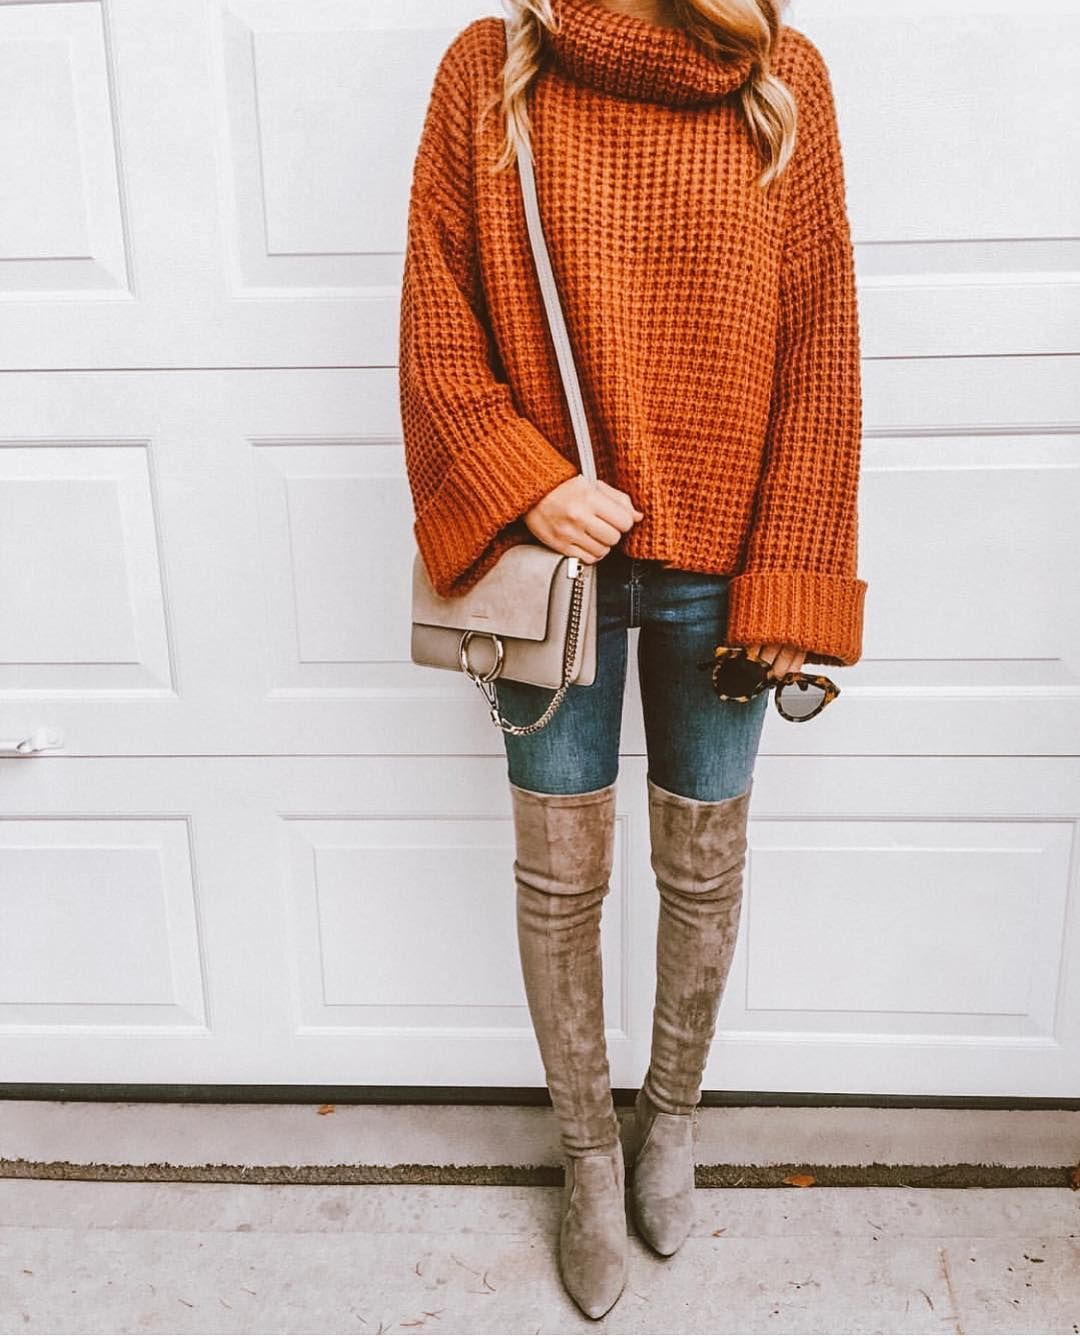 6c85e83baaa7  hotseller  bestselling  sweater  sweaterweather  knitwear  ootd   outfitinspo  fall  falloutfits  causaloutfit  overthekneeboots  boots   outfitideas  lovegm ...